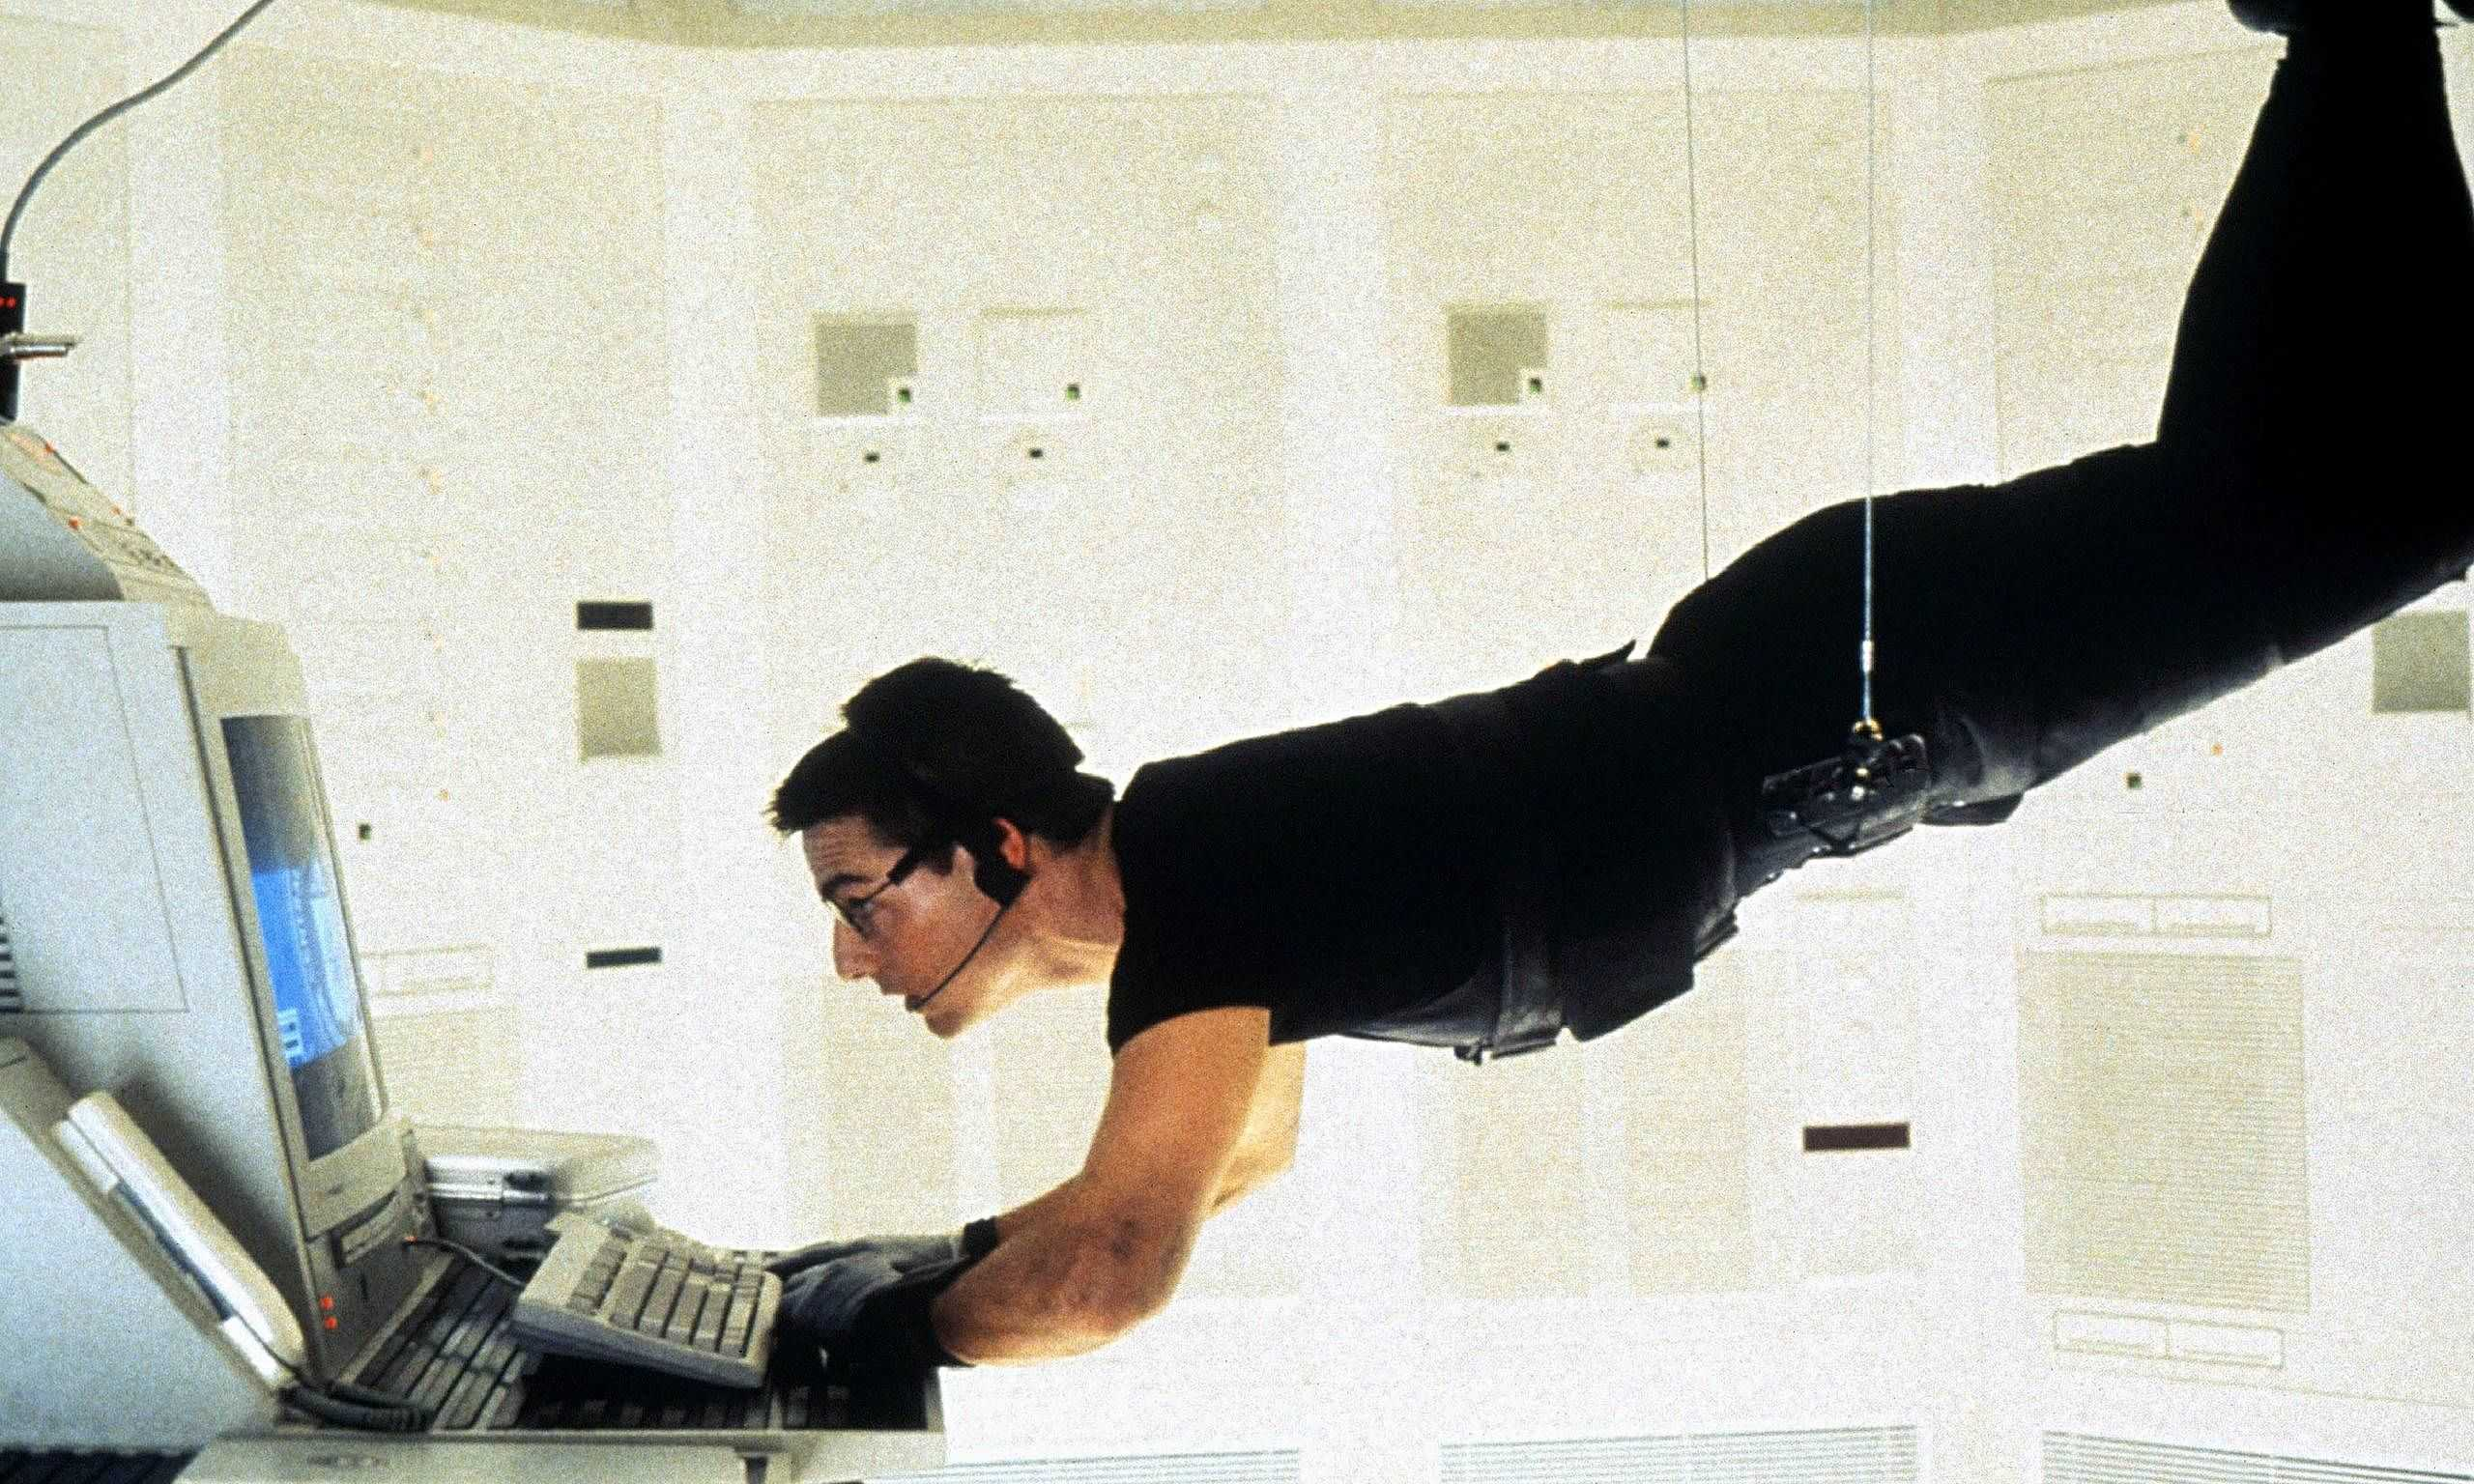 Sadly, Apple's Mission: Impossible deal doesn't quite work out as planned.